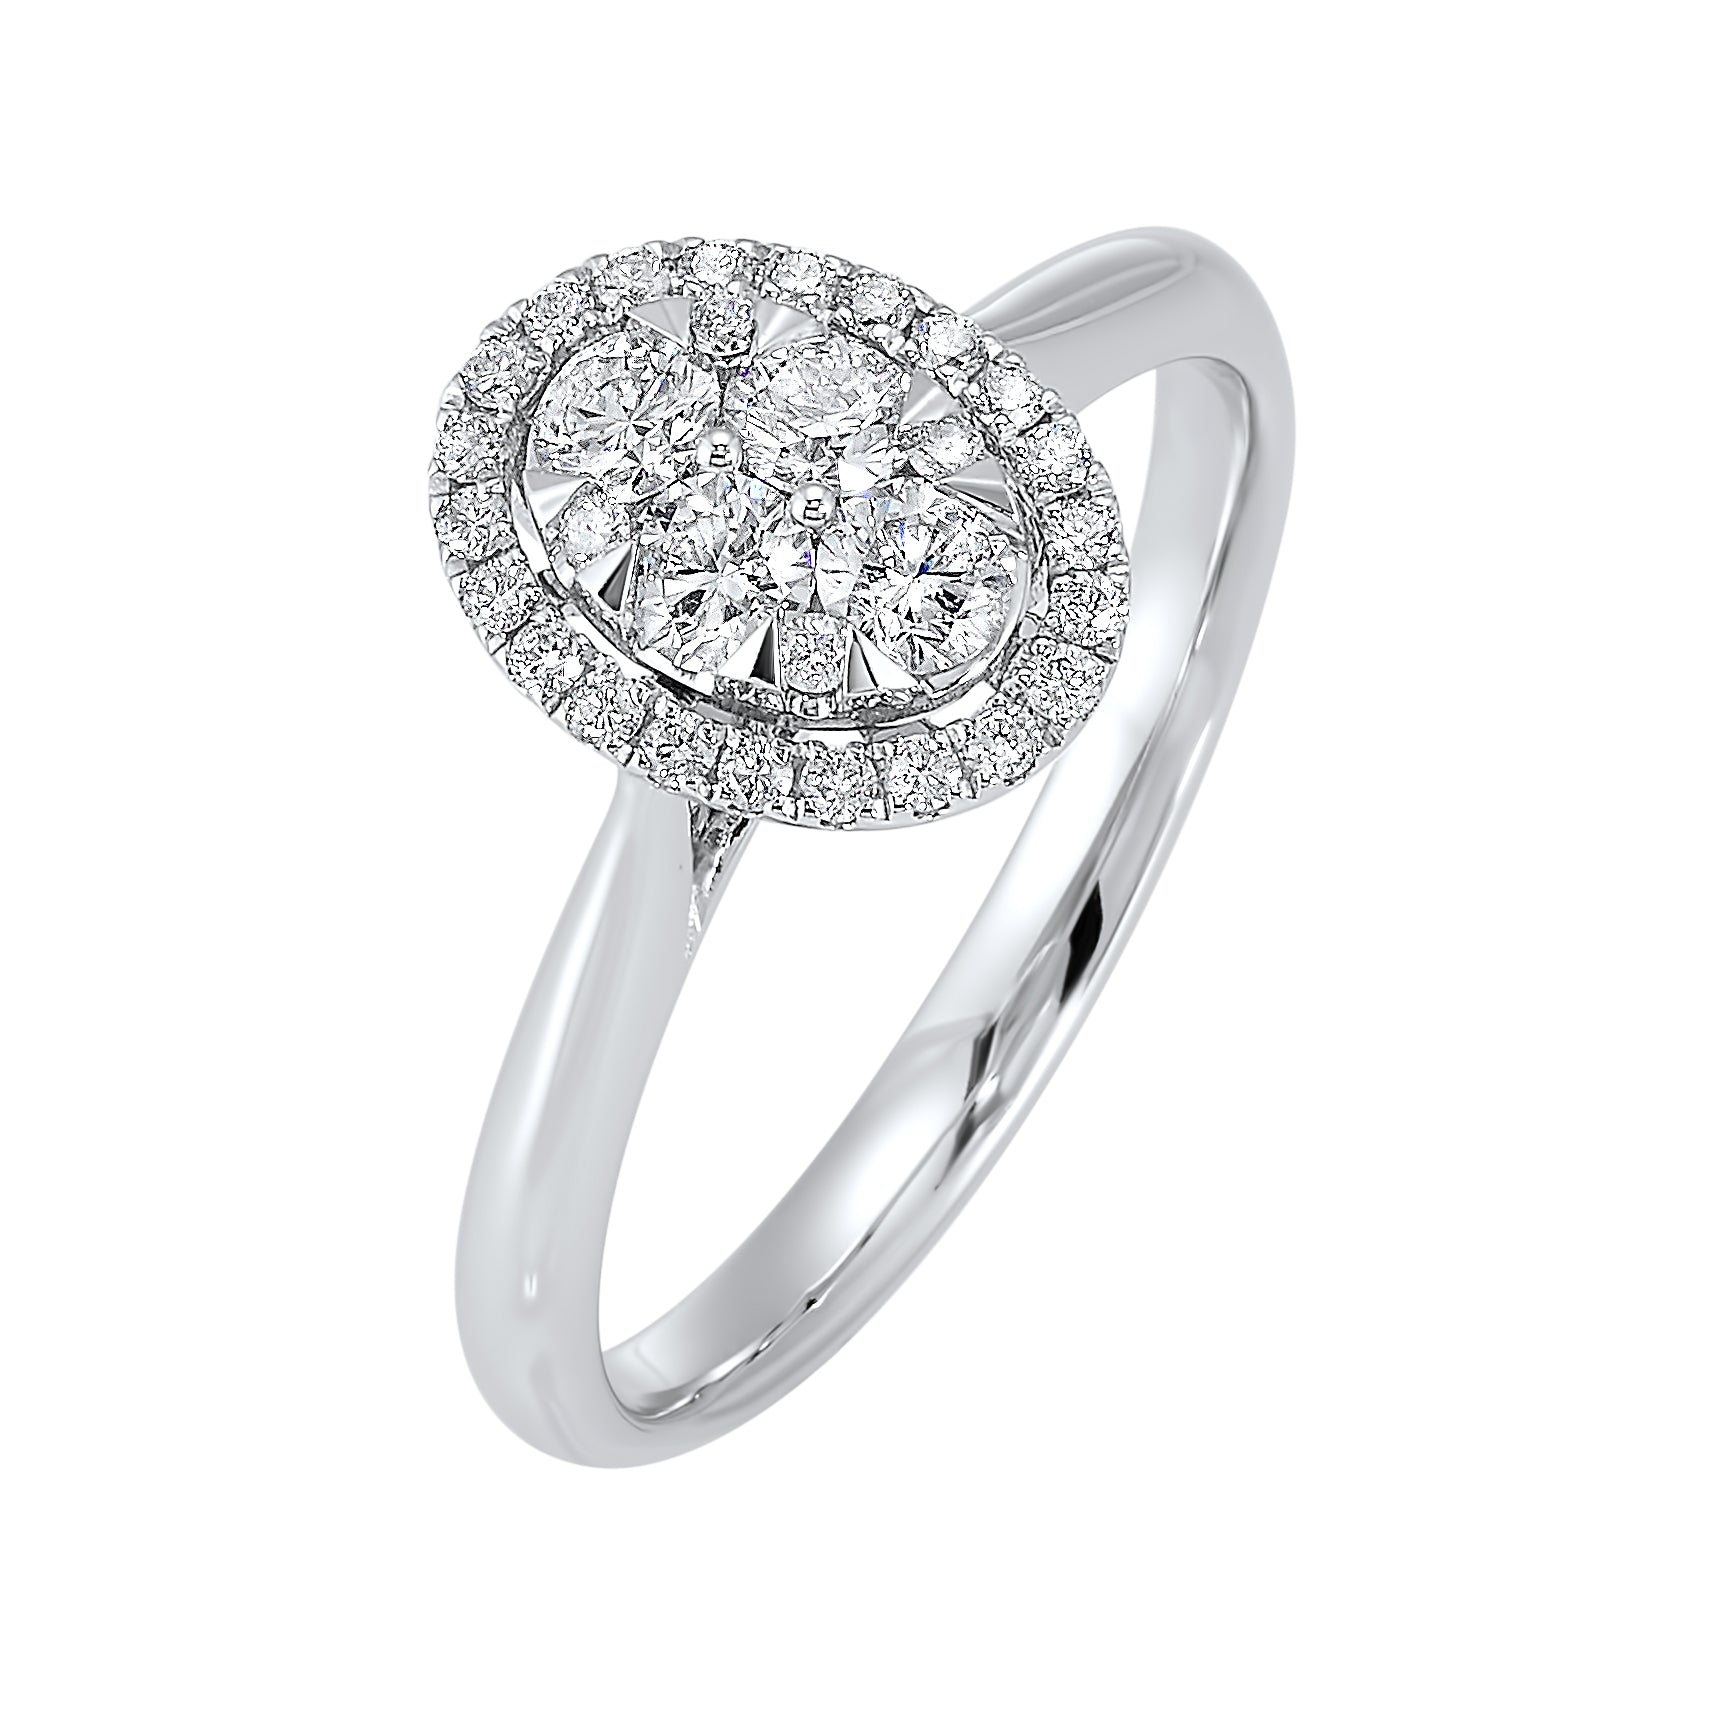 Oval Halo Diamond Engagement Ring in 14K White Gold (1/3 ct. tw.)